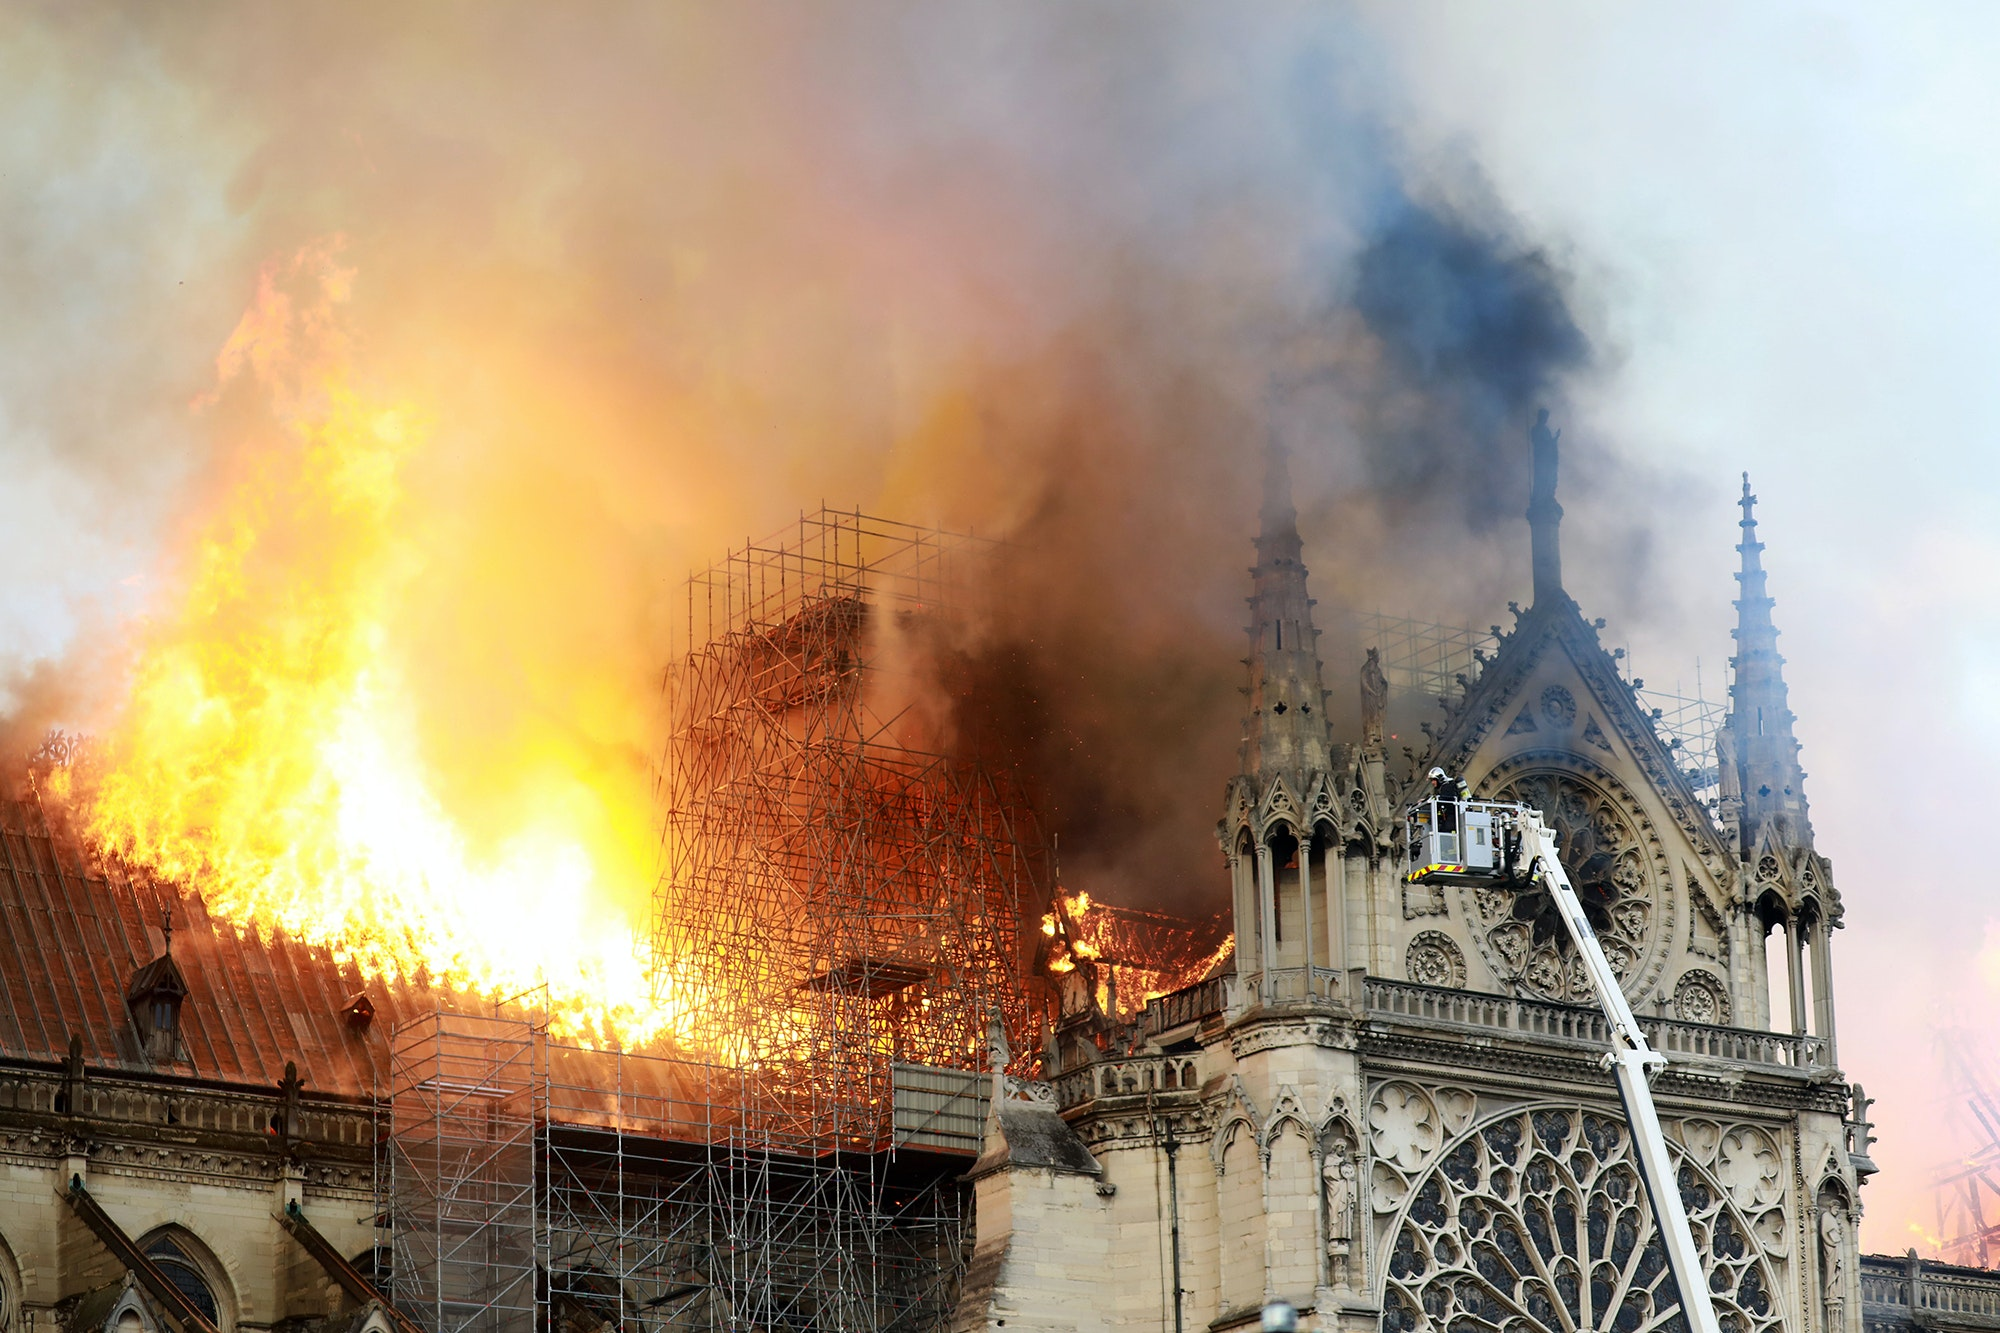 Wonderings: Notre Dame will rise from the ashes even greater than before